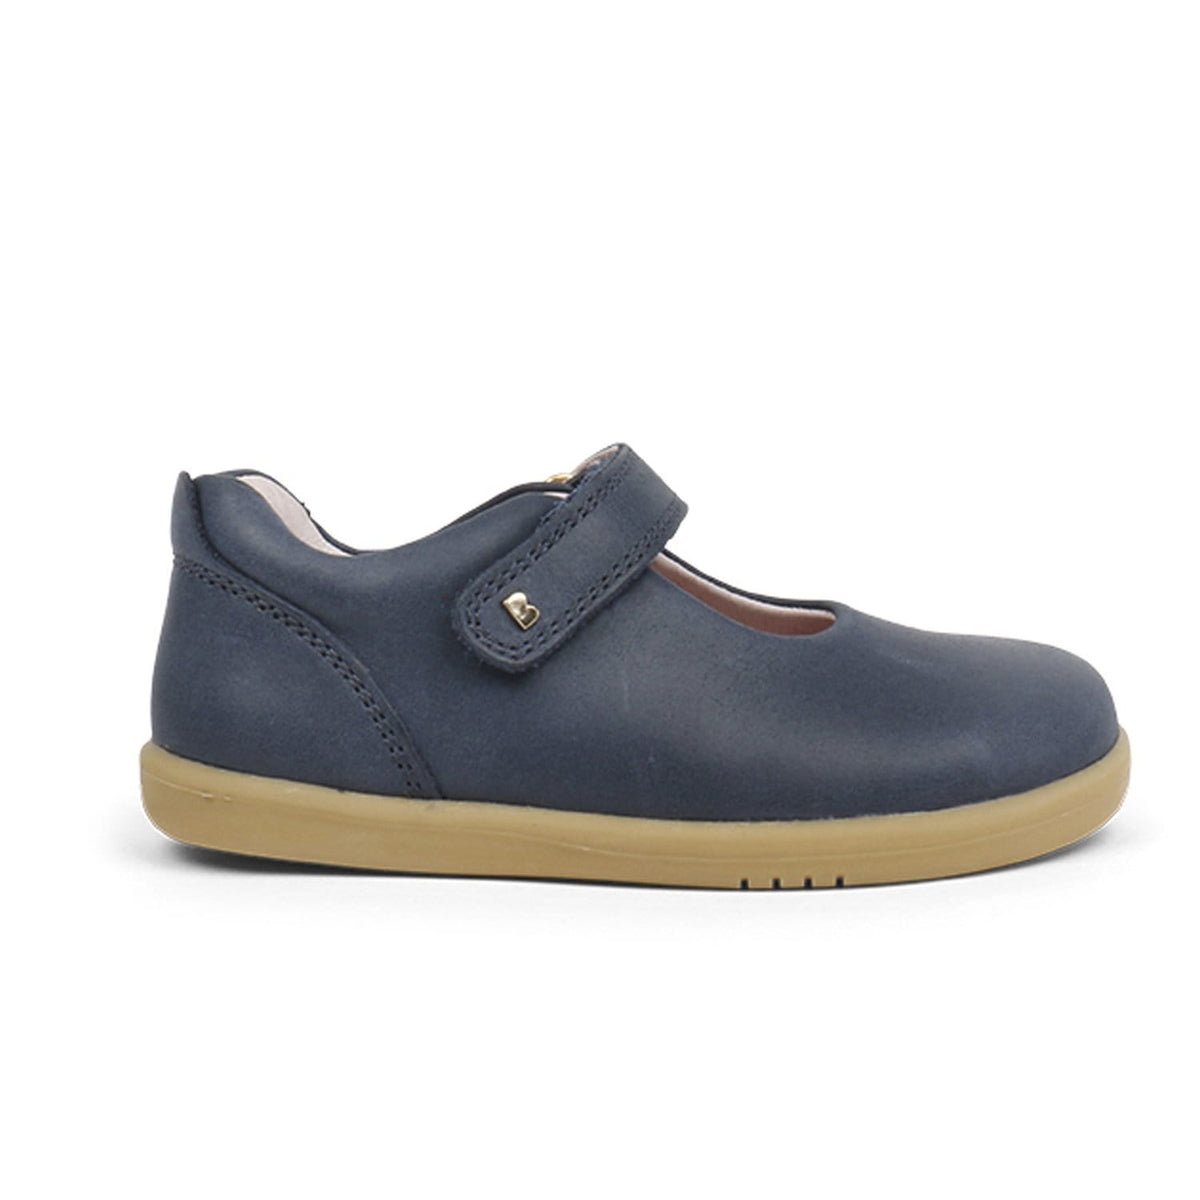 IW Delight French Navy Mary Jane